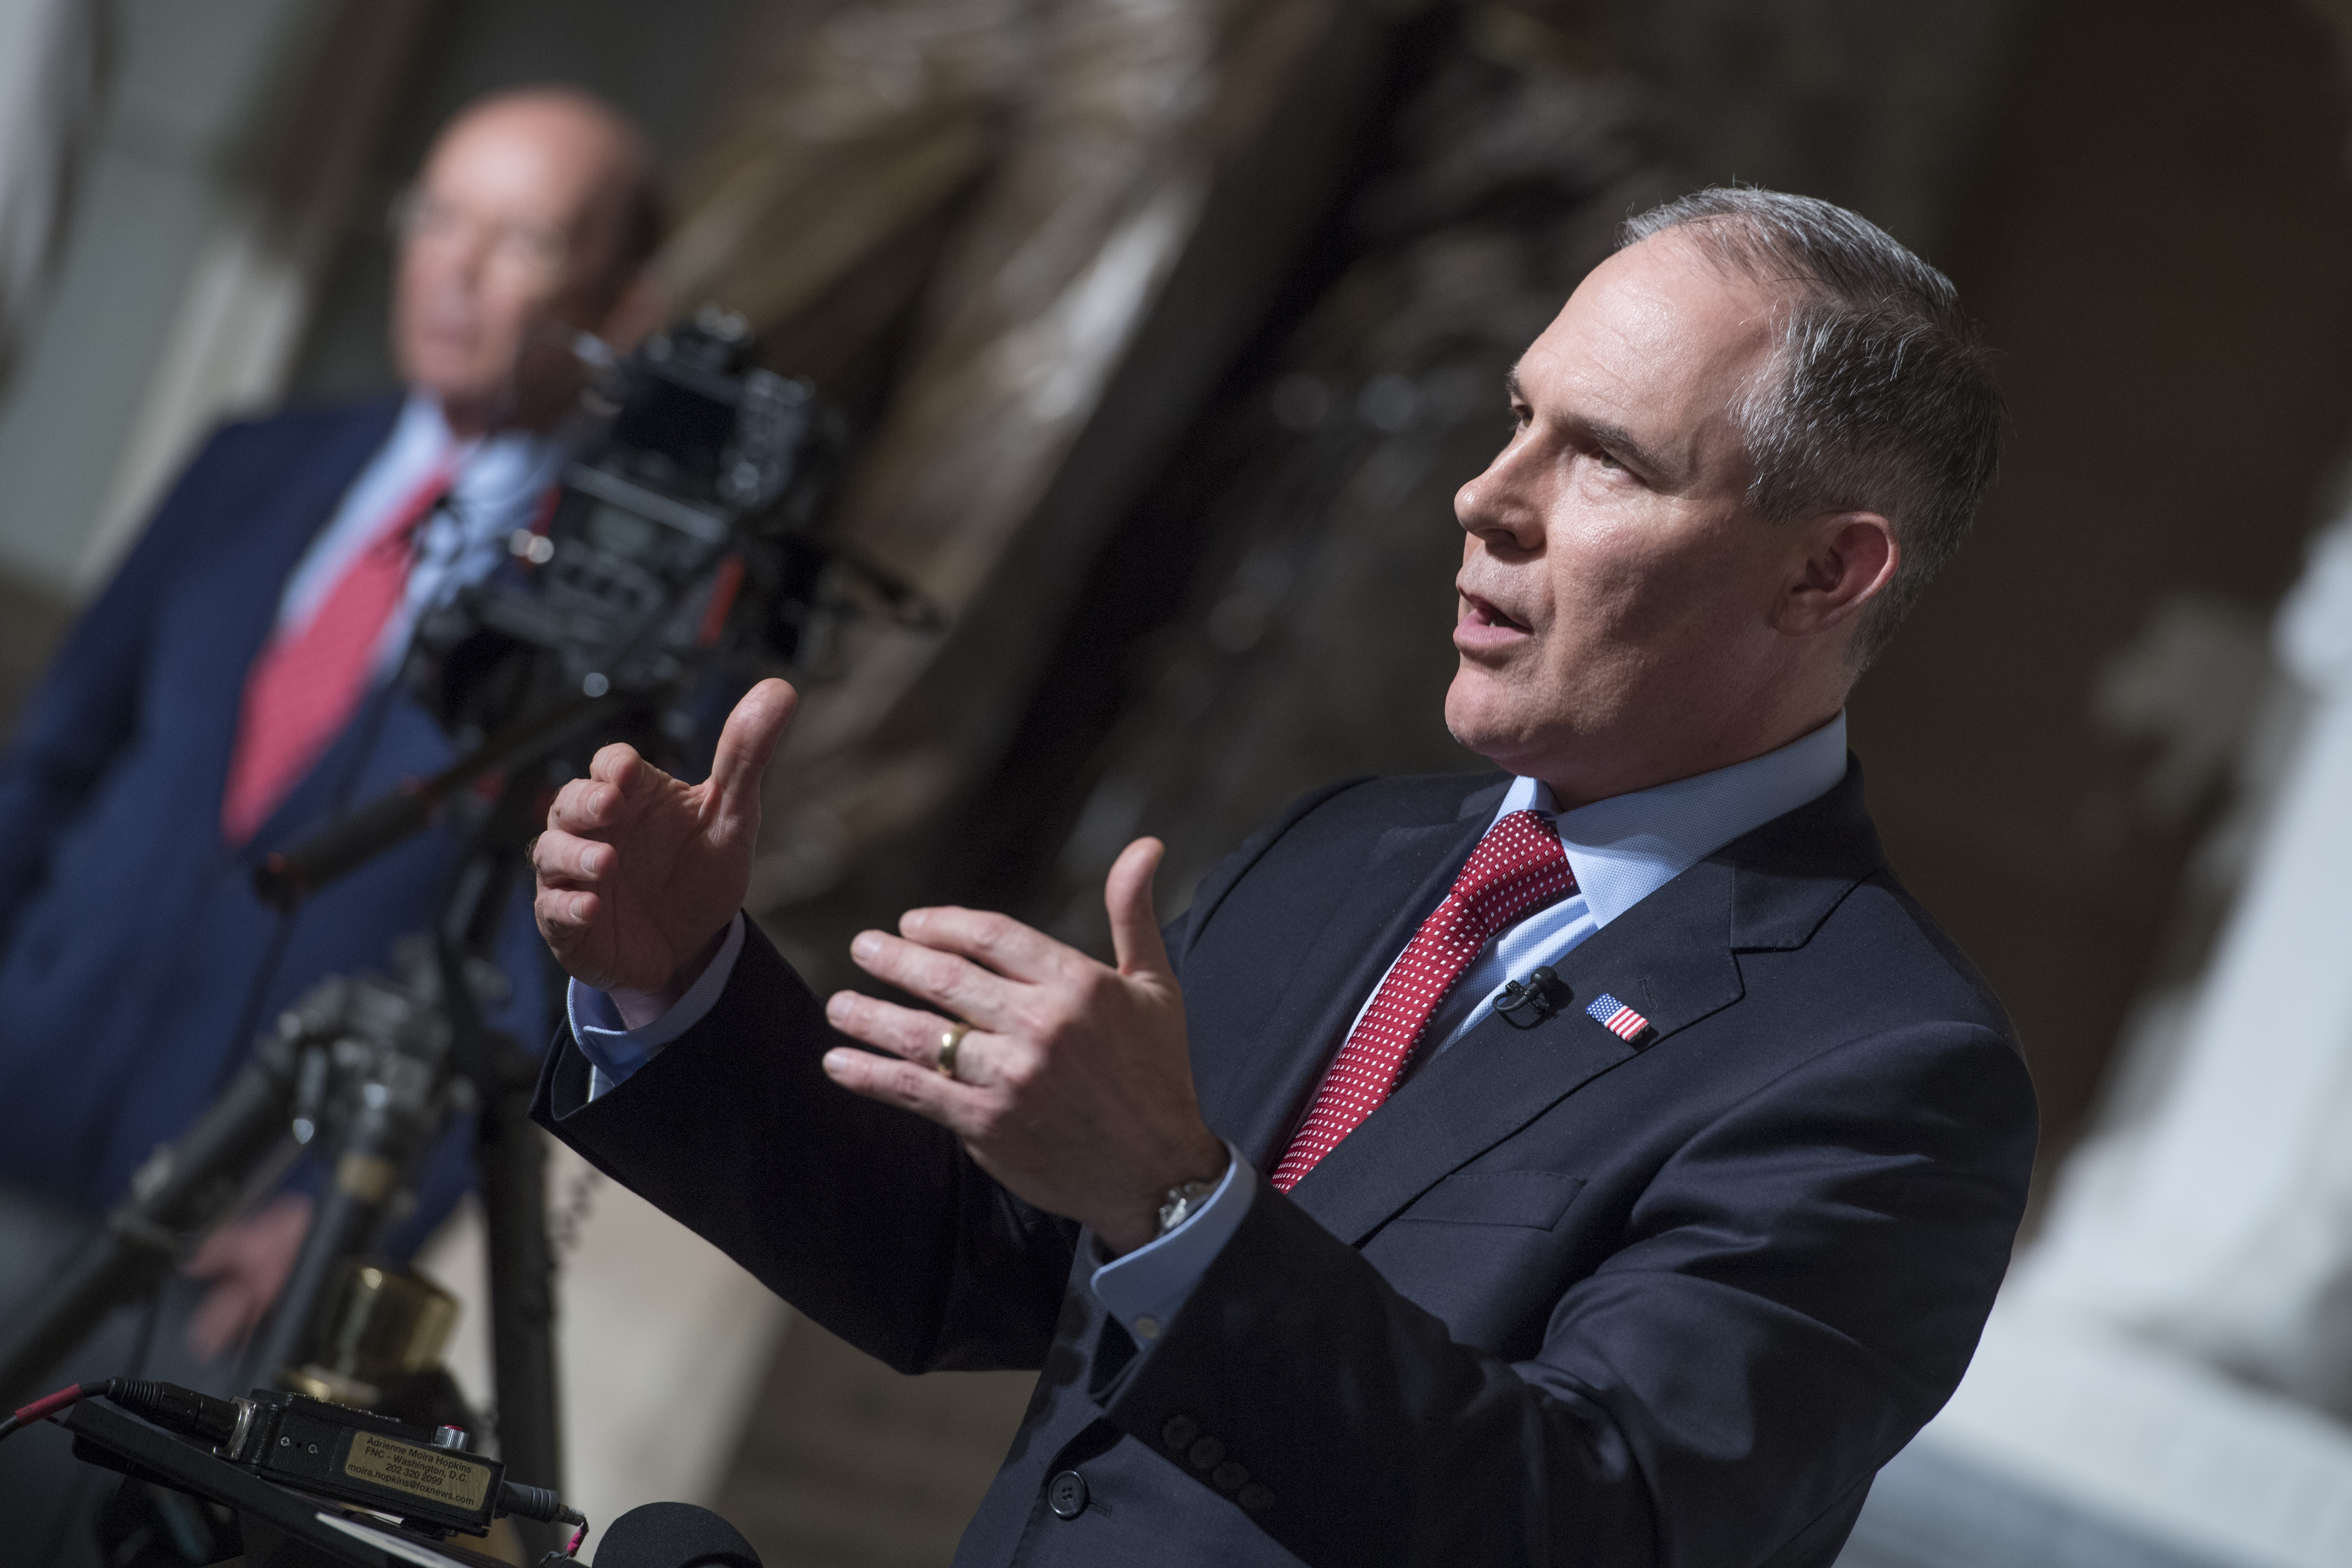 Scott Pruitt, administrator of the Environmental Protection Agency, is interviewed in Statuary Hall before President Donald Trump addressed a joint session of Congress on Feb 28